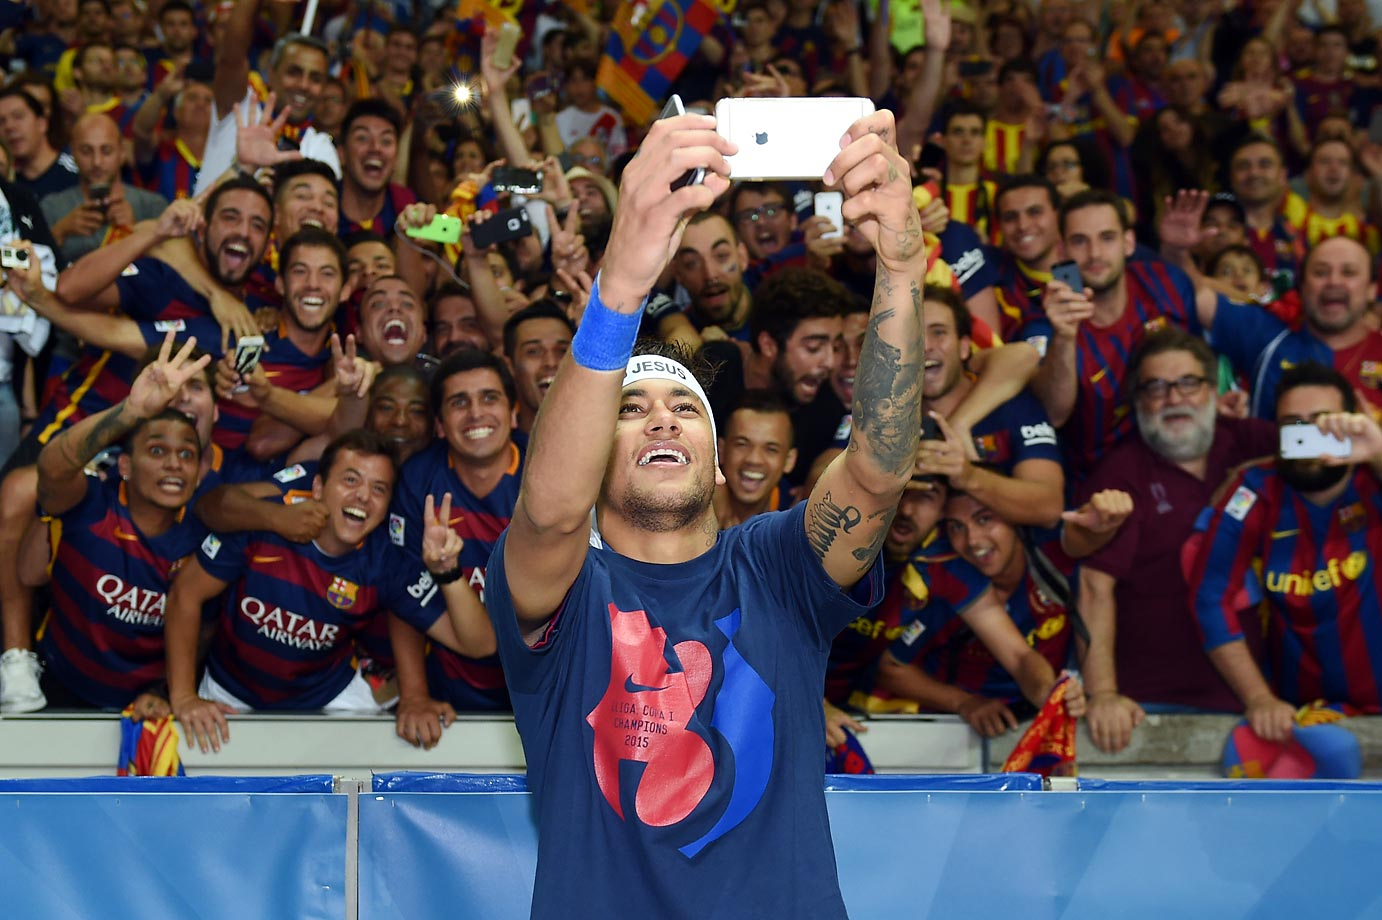 Neymar da Silva Santos Jr. of Barcelona poses for a selfie with fans following his team's victory over Juventus in the UEFA Champions League Final on June 6 in Berlin.